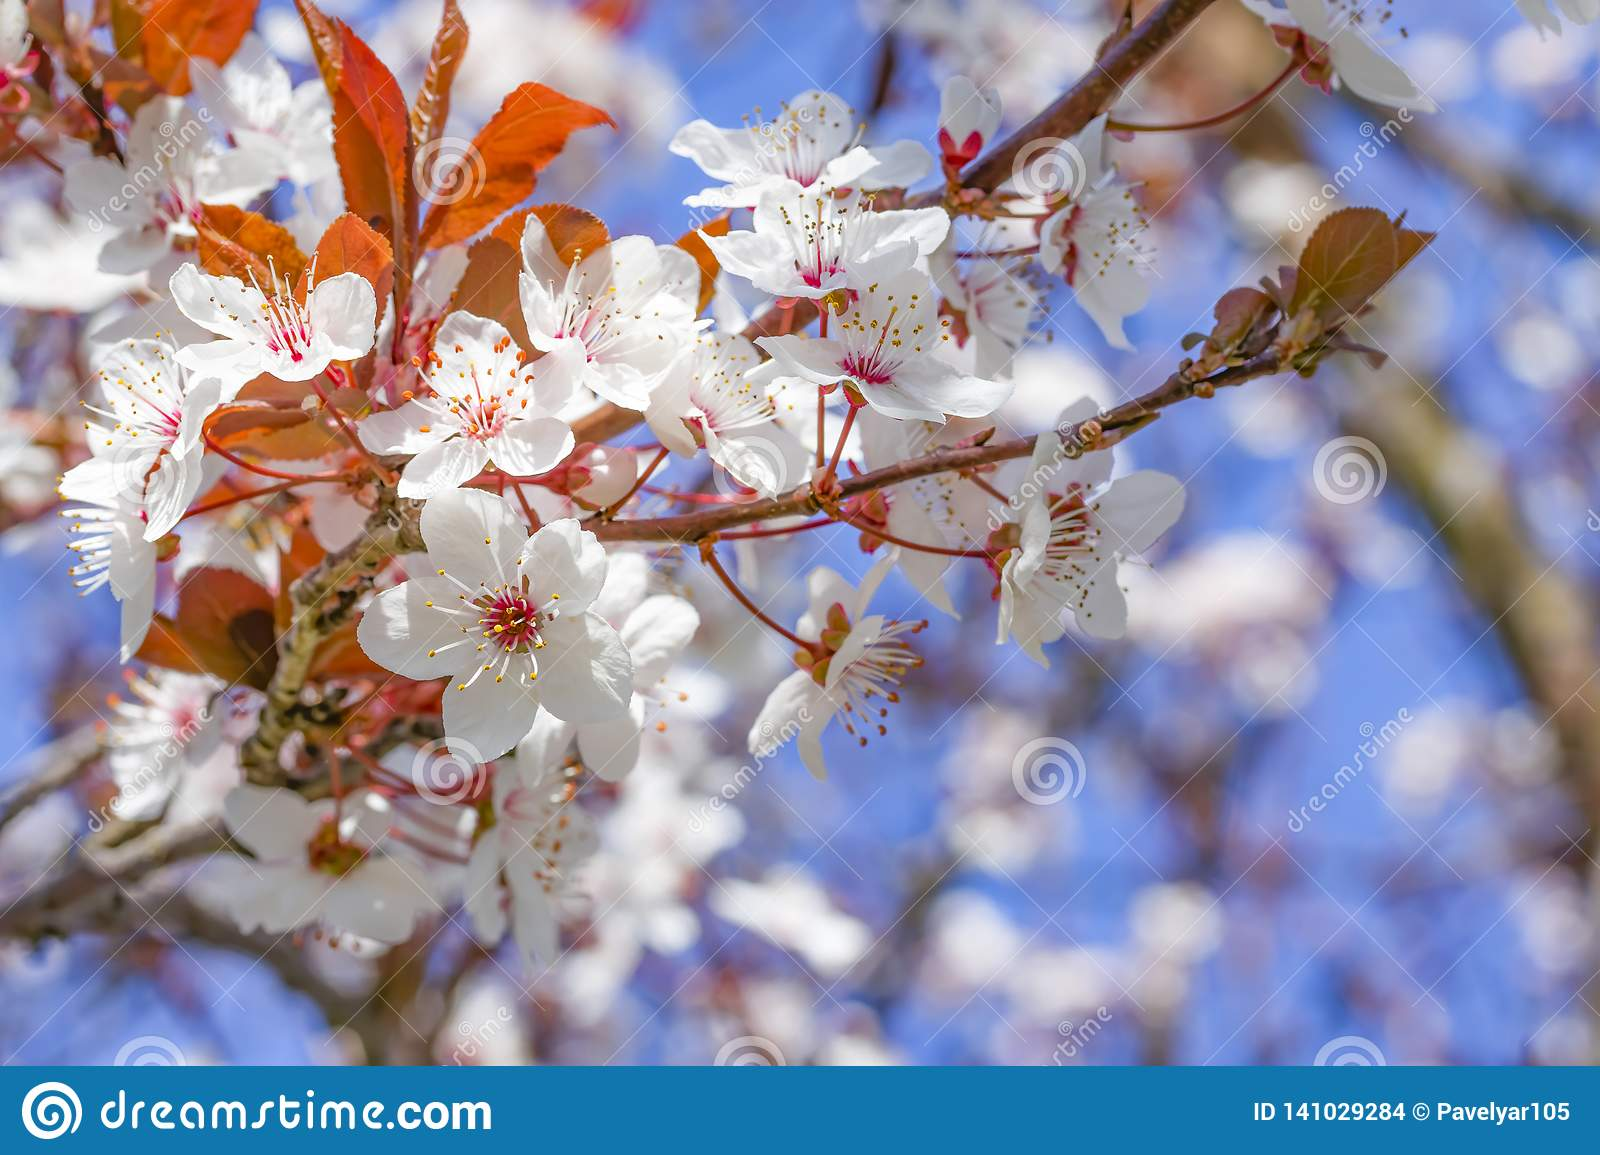 White red flowers of Prunus cerasifera. Blossoming branch with with flowers of cherry plum. Blooming tree